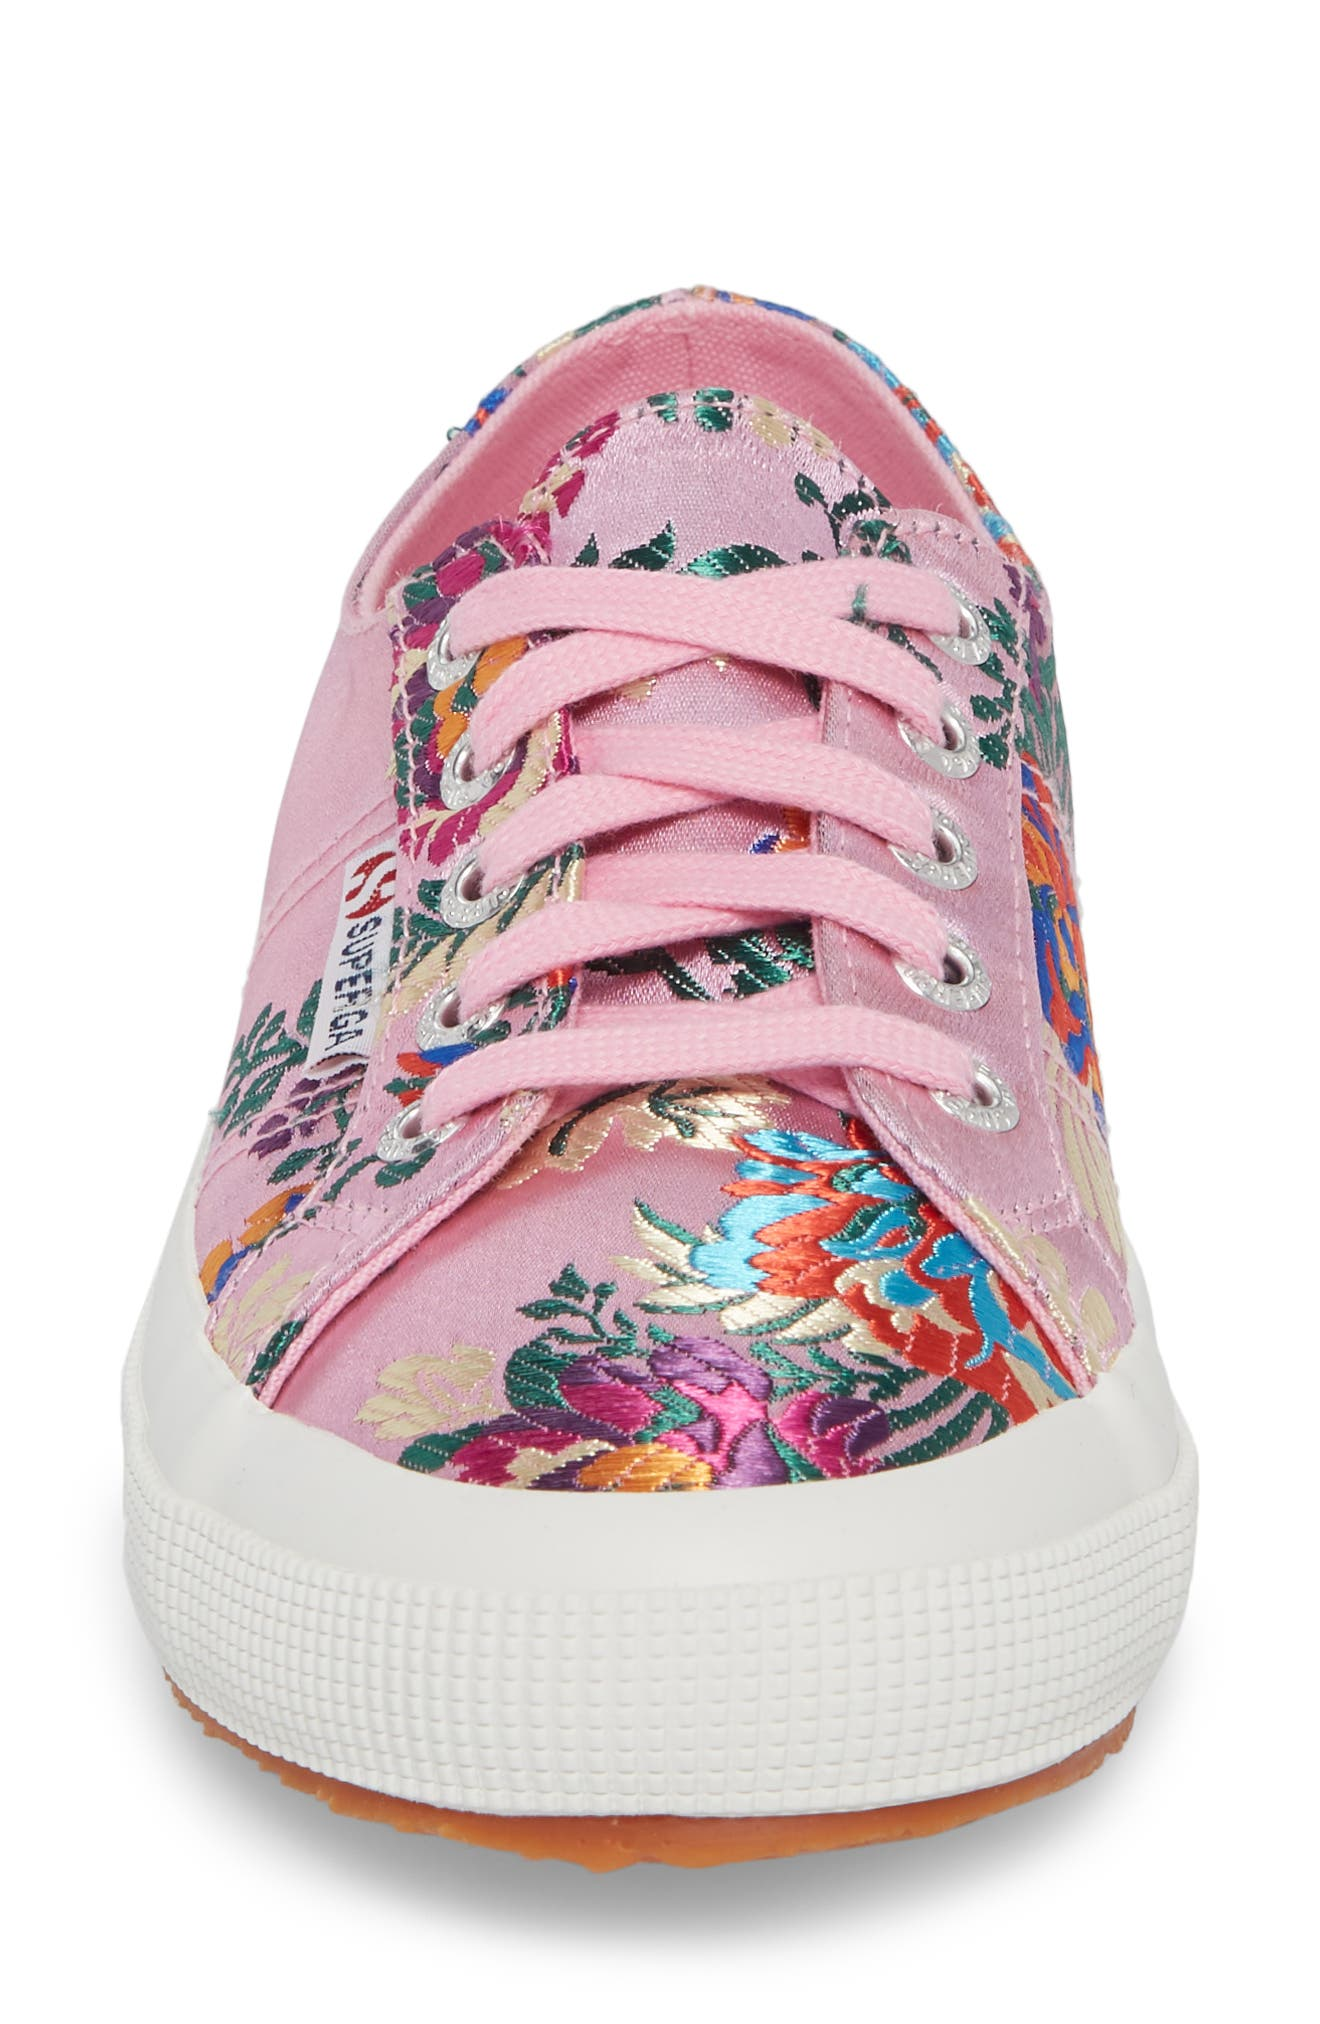 2750 Embroidered Sneaker,                             Alternate thumbnail 4, color,                             650